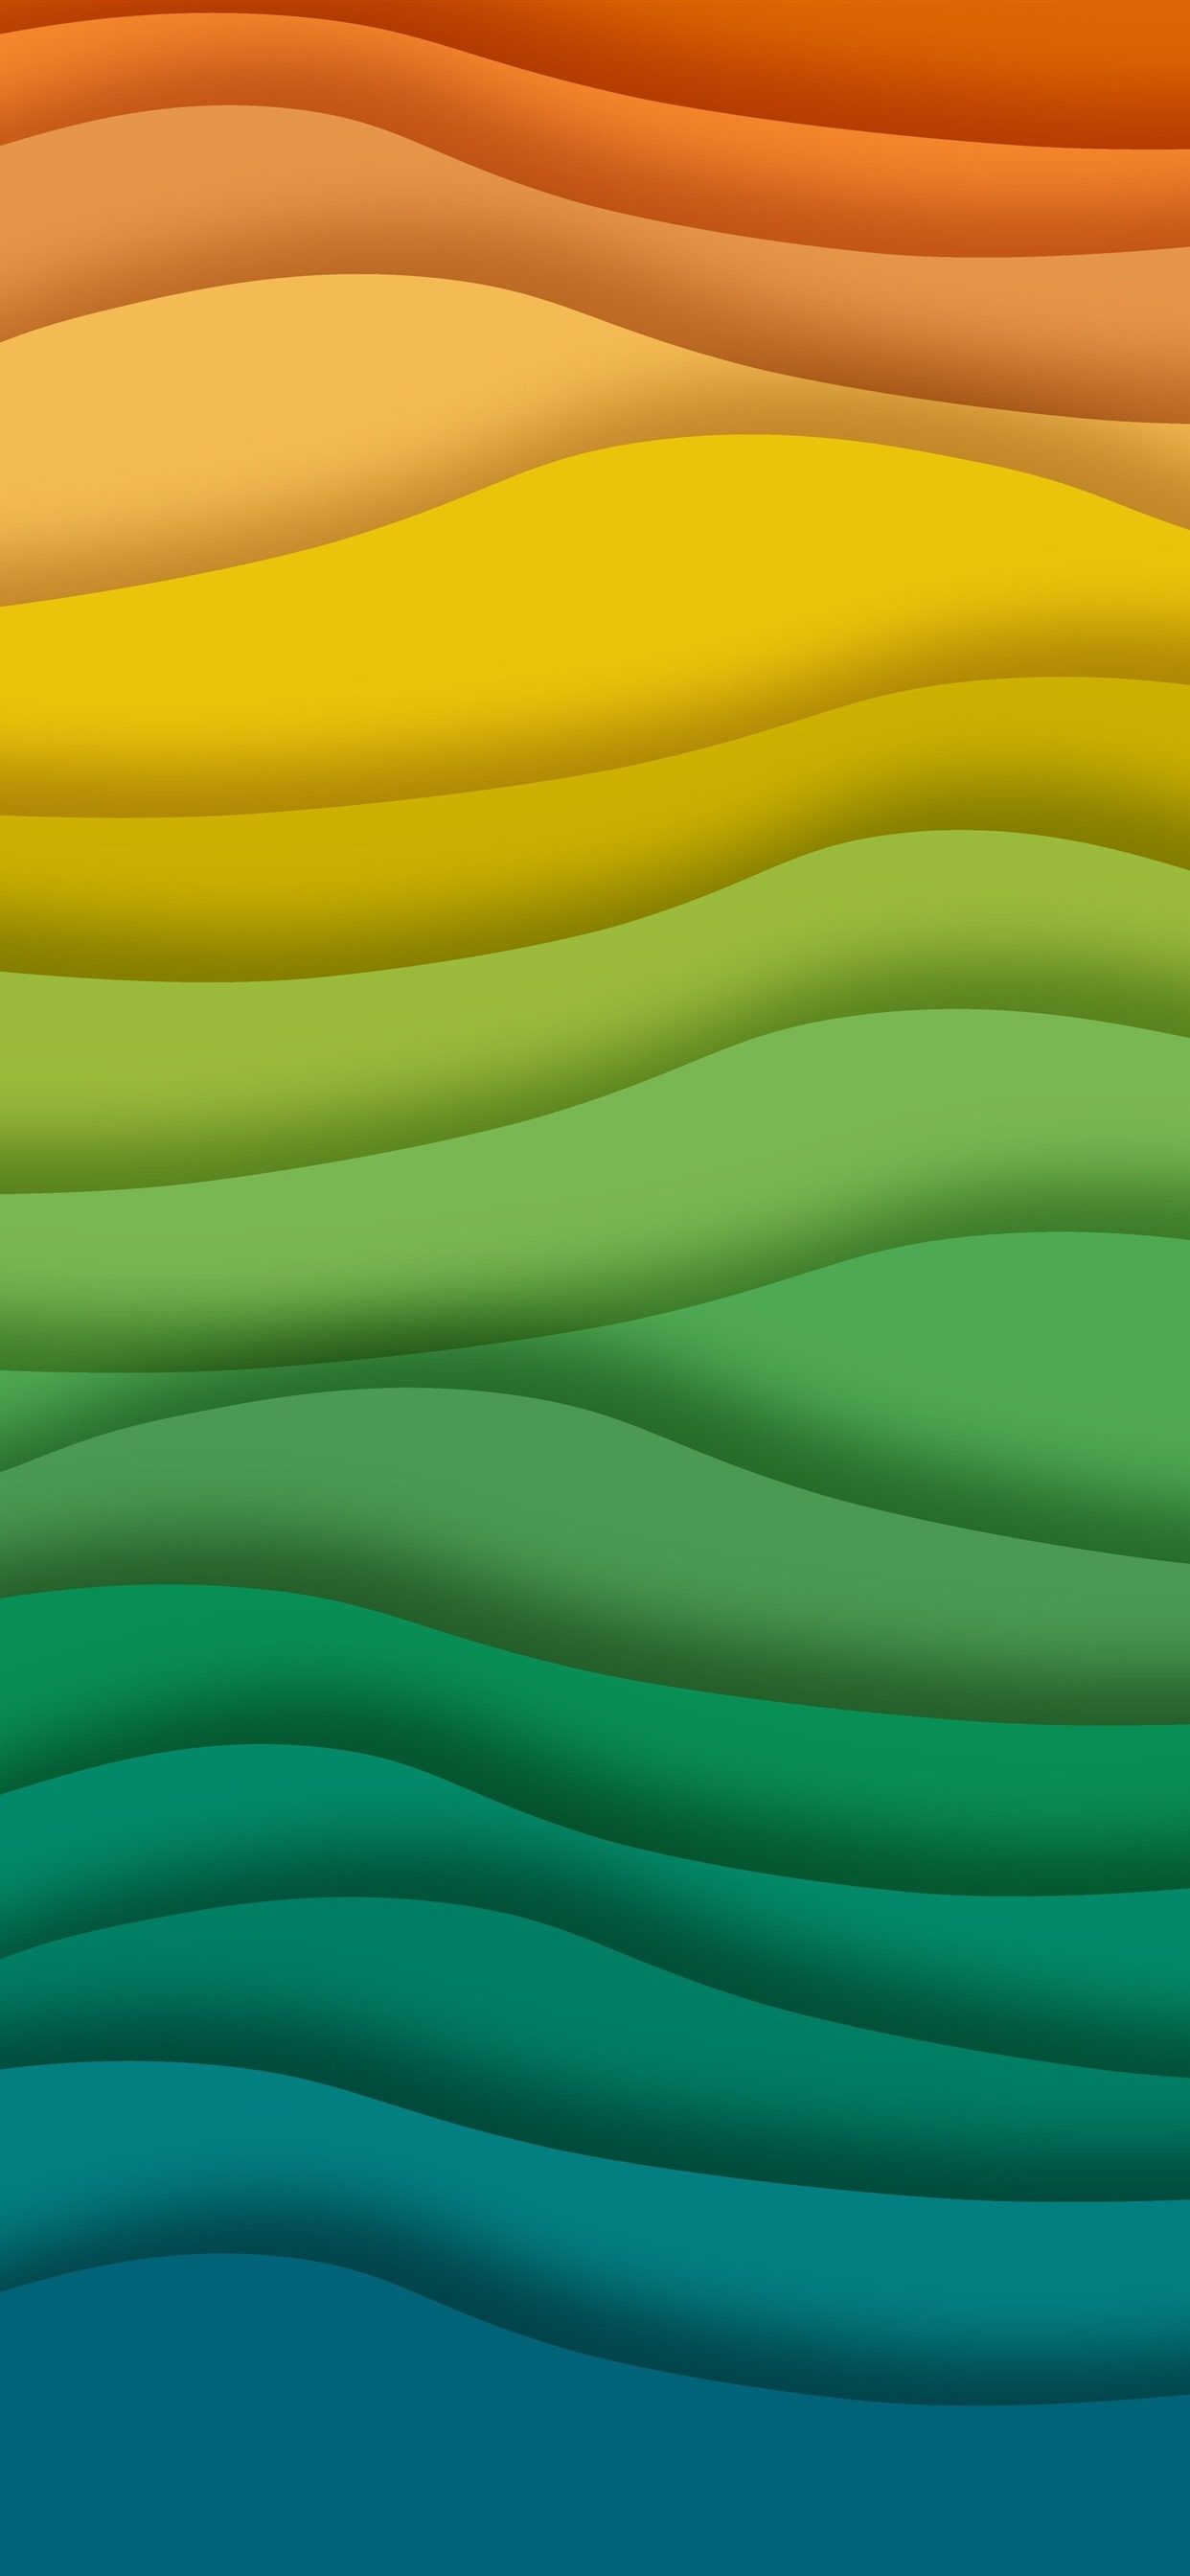 Rainbow Waves Abstract 1242x2688 Iphone 11 Pro Xs Max Wallpaper Background Picture Image